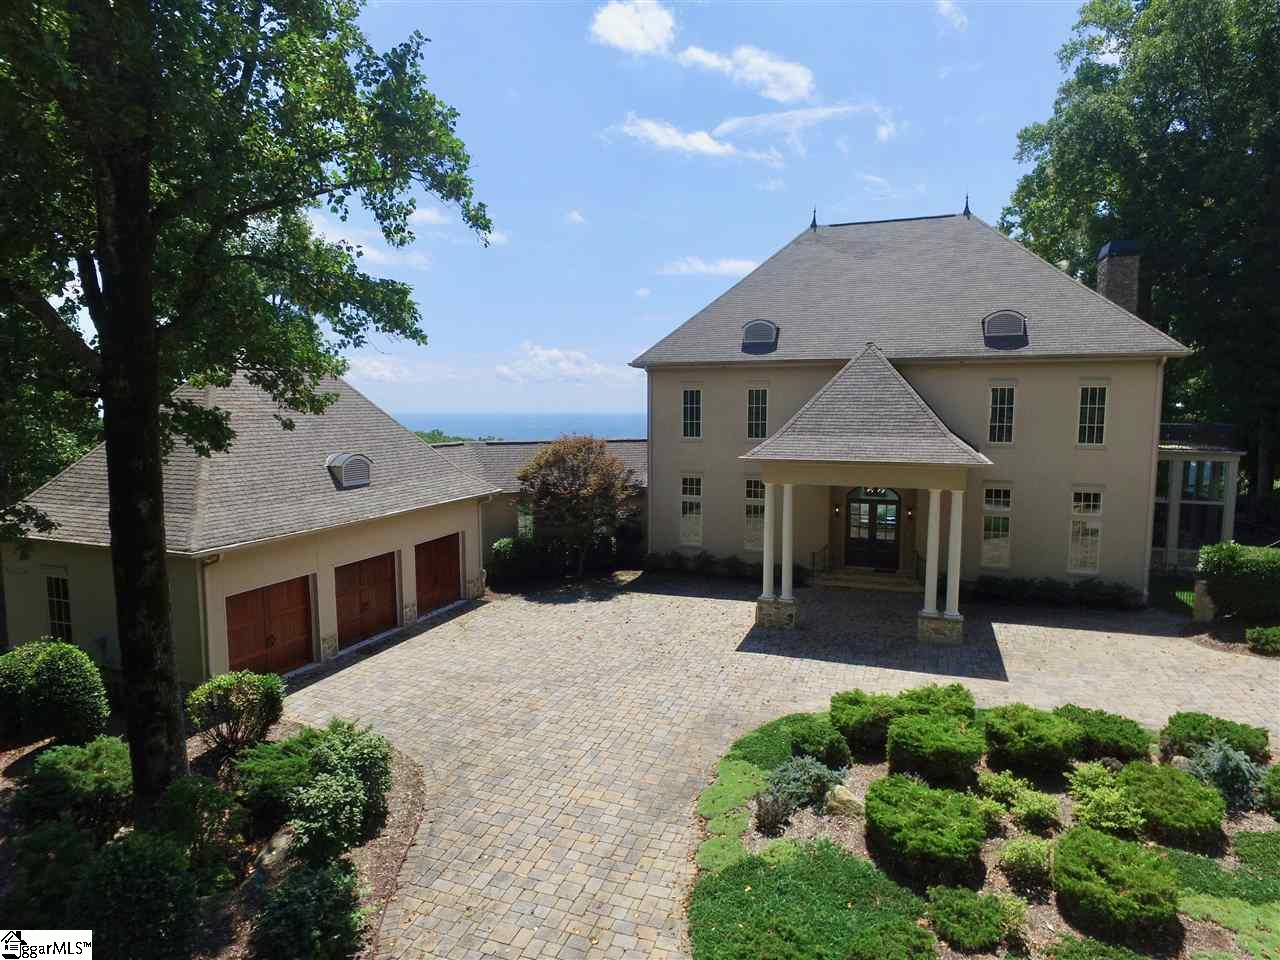 Come home to The Cliffs at Glassy, The Cliffs' original gated golf and wellness community atop Glassy Mountain in Landrum, SC.   From the minute you walk through the front door of this mountaintop estate situated on 3.29 acres, you know you are at the top of the world. Expansive floor-to-ceiling windows overlook a 70-mile vista of verdant valleys, the Blue Ridge escarpment, and – at night – the twinkly lights of the towns below.  On July 4 you look down at the fireworks!    You are immediately enveloped in serenity as you walk through this unique, custom-designed home. Three floors of large, open spaces are cozy enough for quality time together or to spread out in your own quarters and soak up the incredible mountain setting.  Unexpected touches delight: An elevator with walls padded in toile fabric.  A butler's pantry with a pull-out linen rack. Kitchen outlets tucked beneath cabinets so that granite spans from countertops to cabinet bottoms. High ceilings on every floor.  Quarter-sawn oak hardwood flooring and cherry cabinetry.  Showers with windows (this house showcases its incredible views at every opportunity.)  Four generous bedrooms and two equally large office/dens.  A fireplace in the master bedroom – and a private deck.  Four bathrooms and two powder rooms with unique tile and decorative treatments.  The open kitchen includes two dishwashers and two ovens.  The upper level boasts a laundry chute to make life easy.  Throughout, there are large closets, beautiful built-ins and well-designed cabinets to provide outstanding storage space.  And, of course, there's a full-house sound system, central vac, and wireless internet.  The main floor has a screened porch and a deck; the lower floor has a deck and a yard with wrought-iron fencing.  At nearly 3,000 feet in elevation with a sophisticated sensibility, this is a home equally comfortable for a quiet family evening or large scale entertaining.  Conveniently located half way between Asheville NC and Greenville 